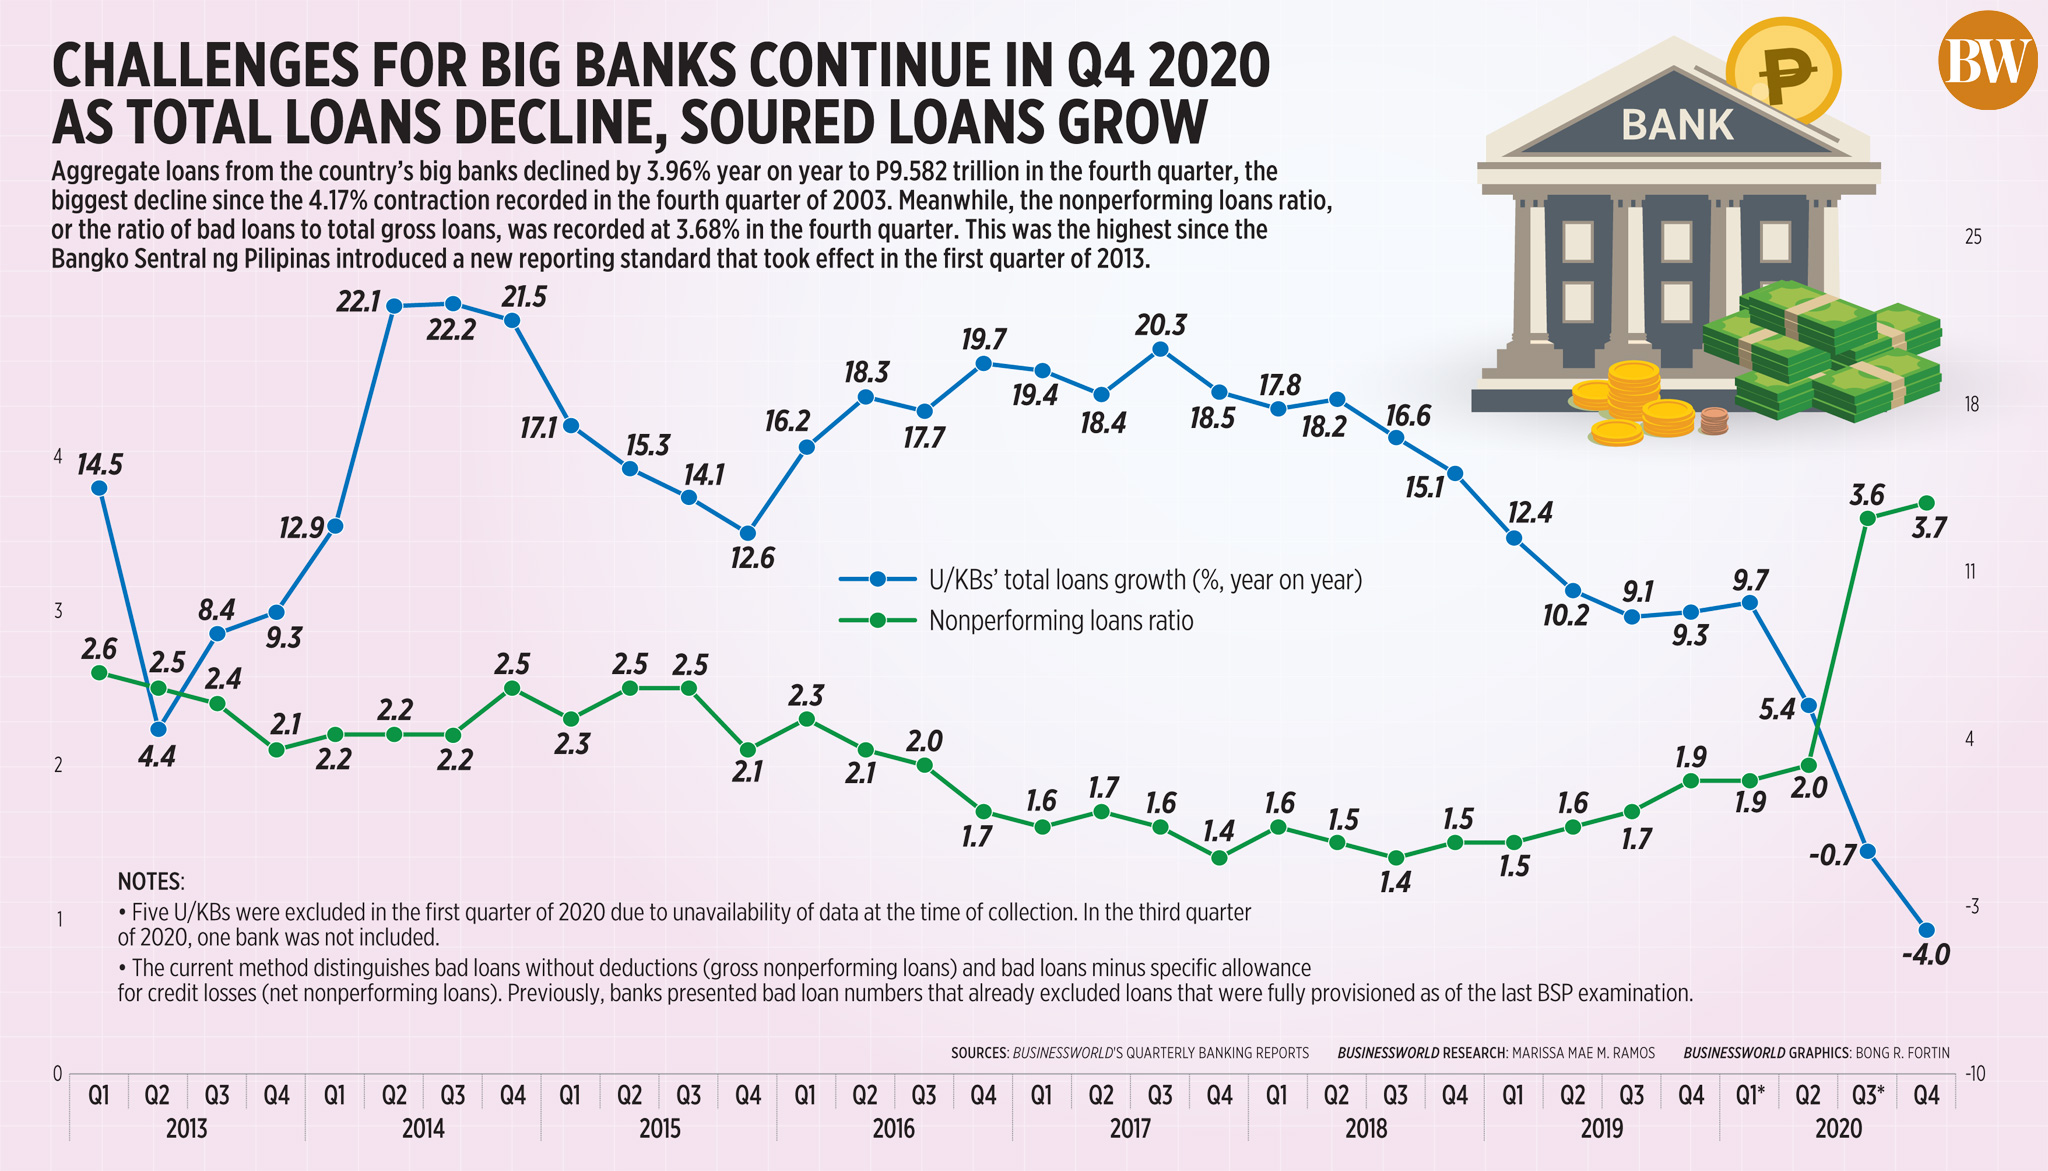 Challenges for big banks continue in Q4 2020 as total loans decline, soured loans grow